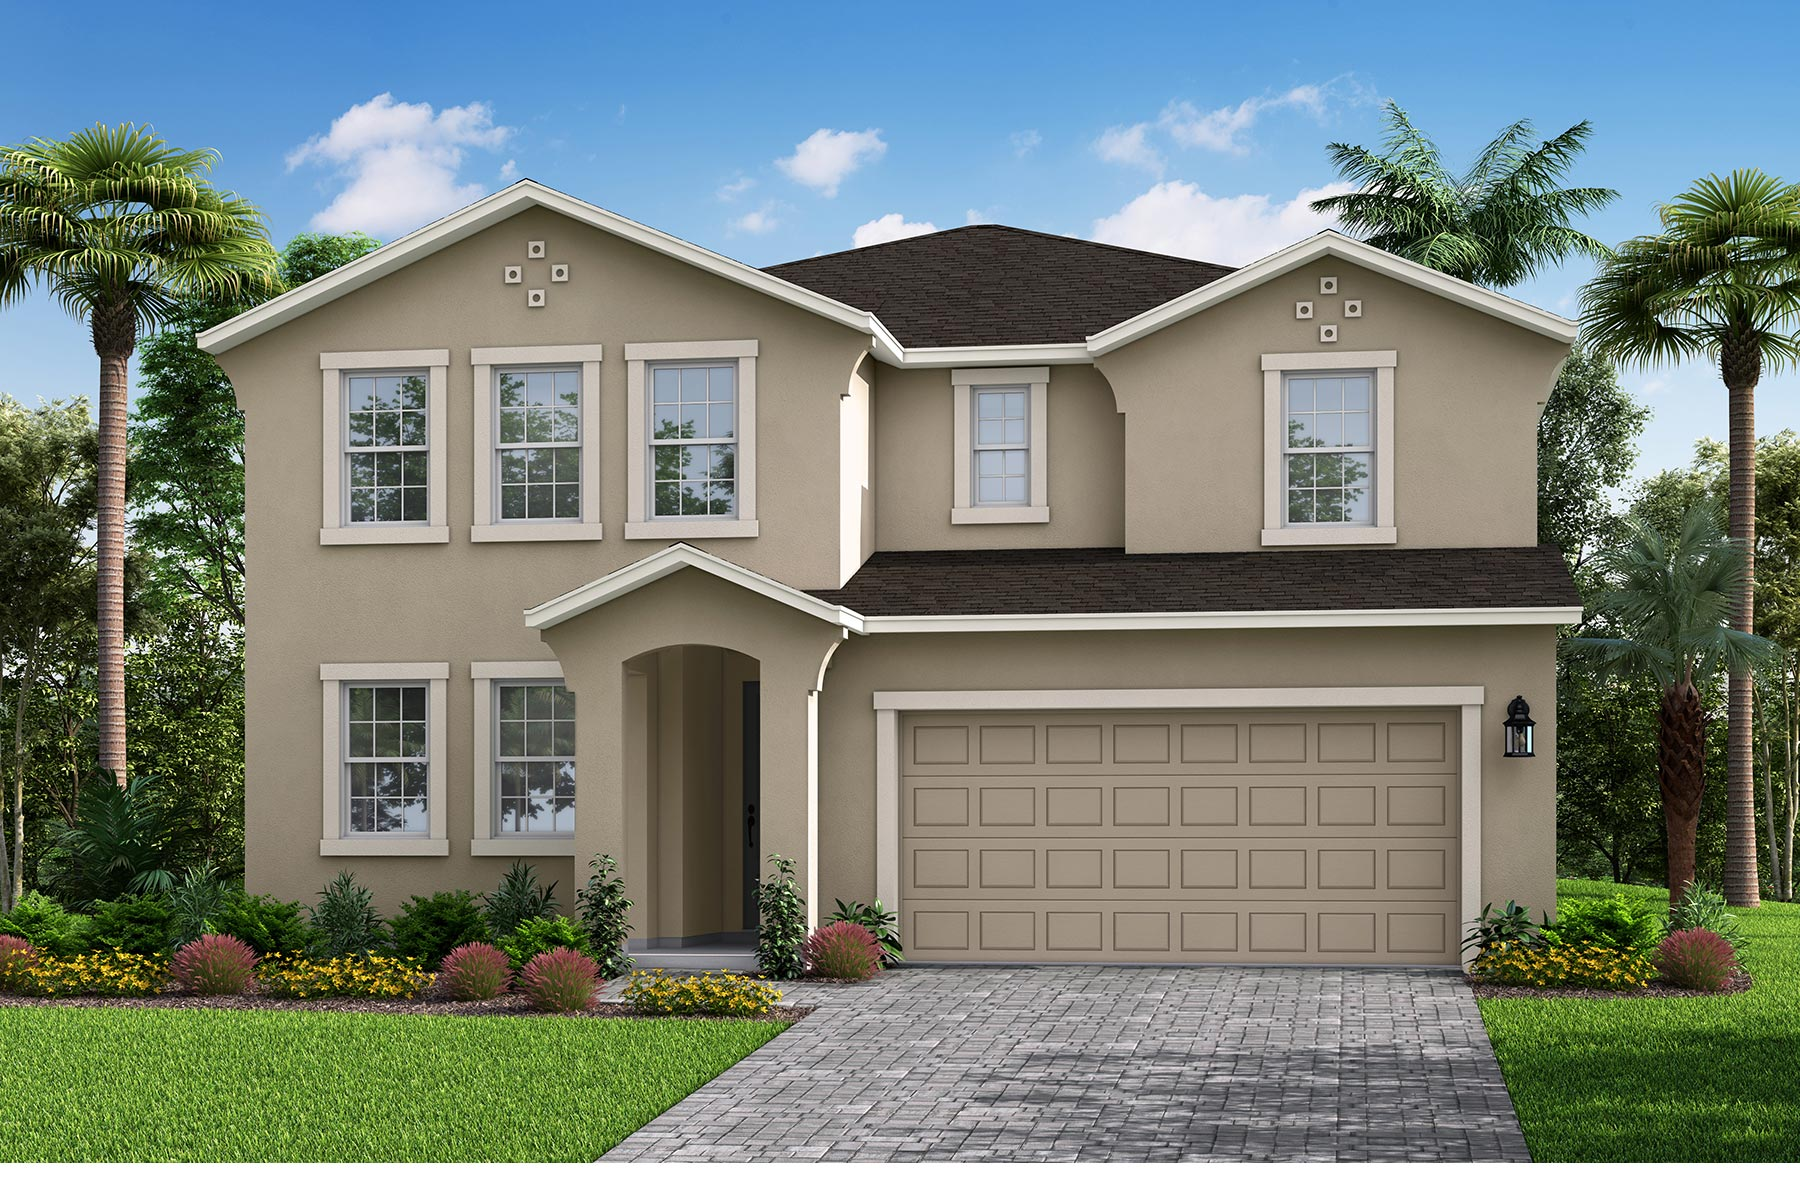 Myrtle Plan Elevation Front at Parkview at Long Lake Ranch in Lutz Florida by Mattamy Homes